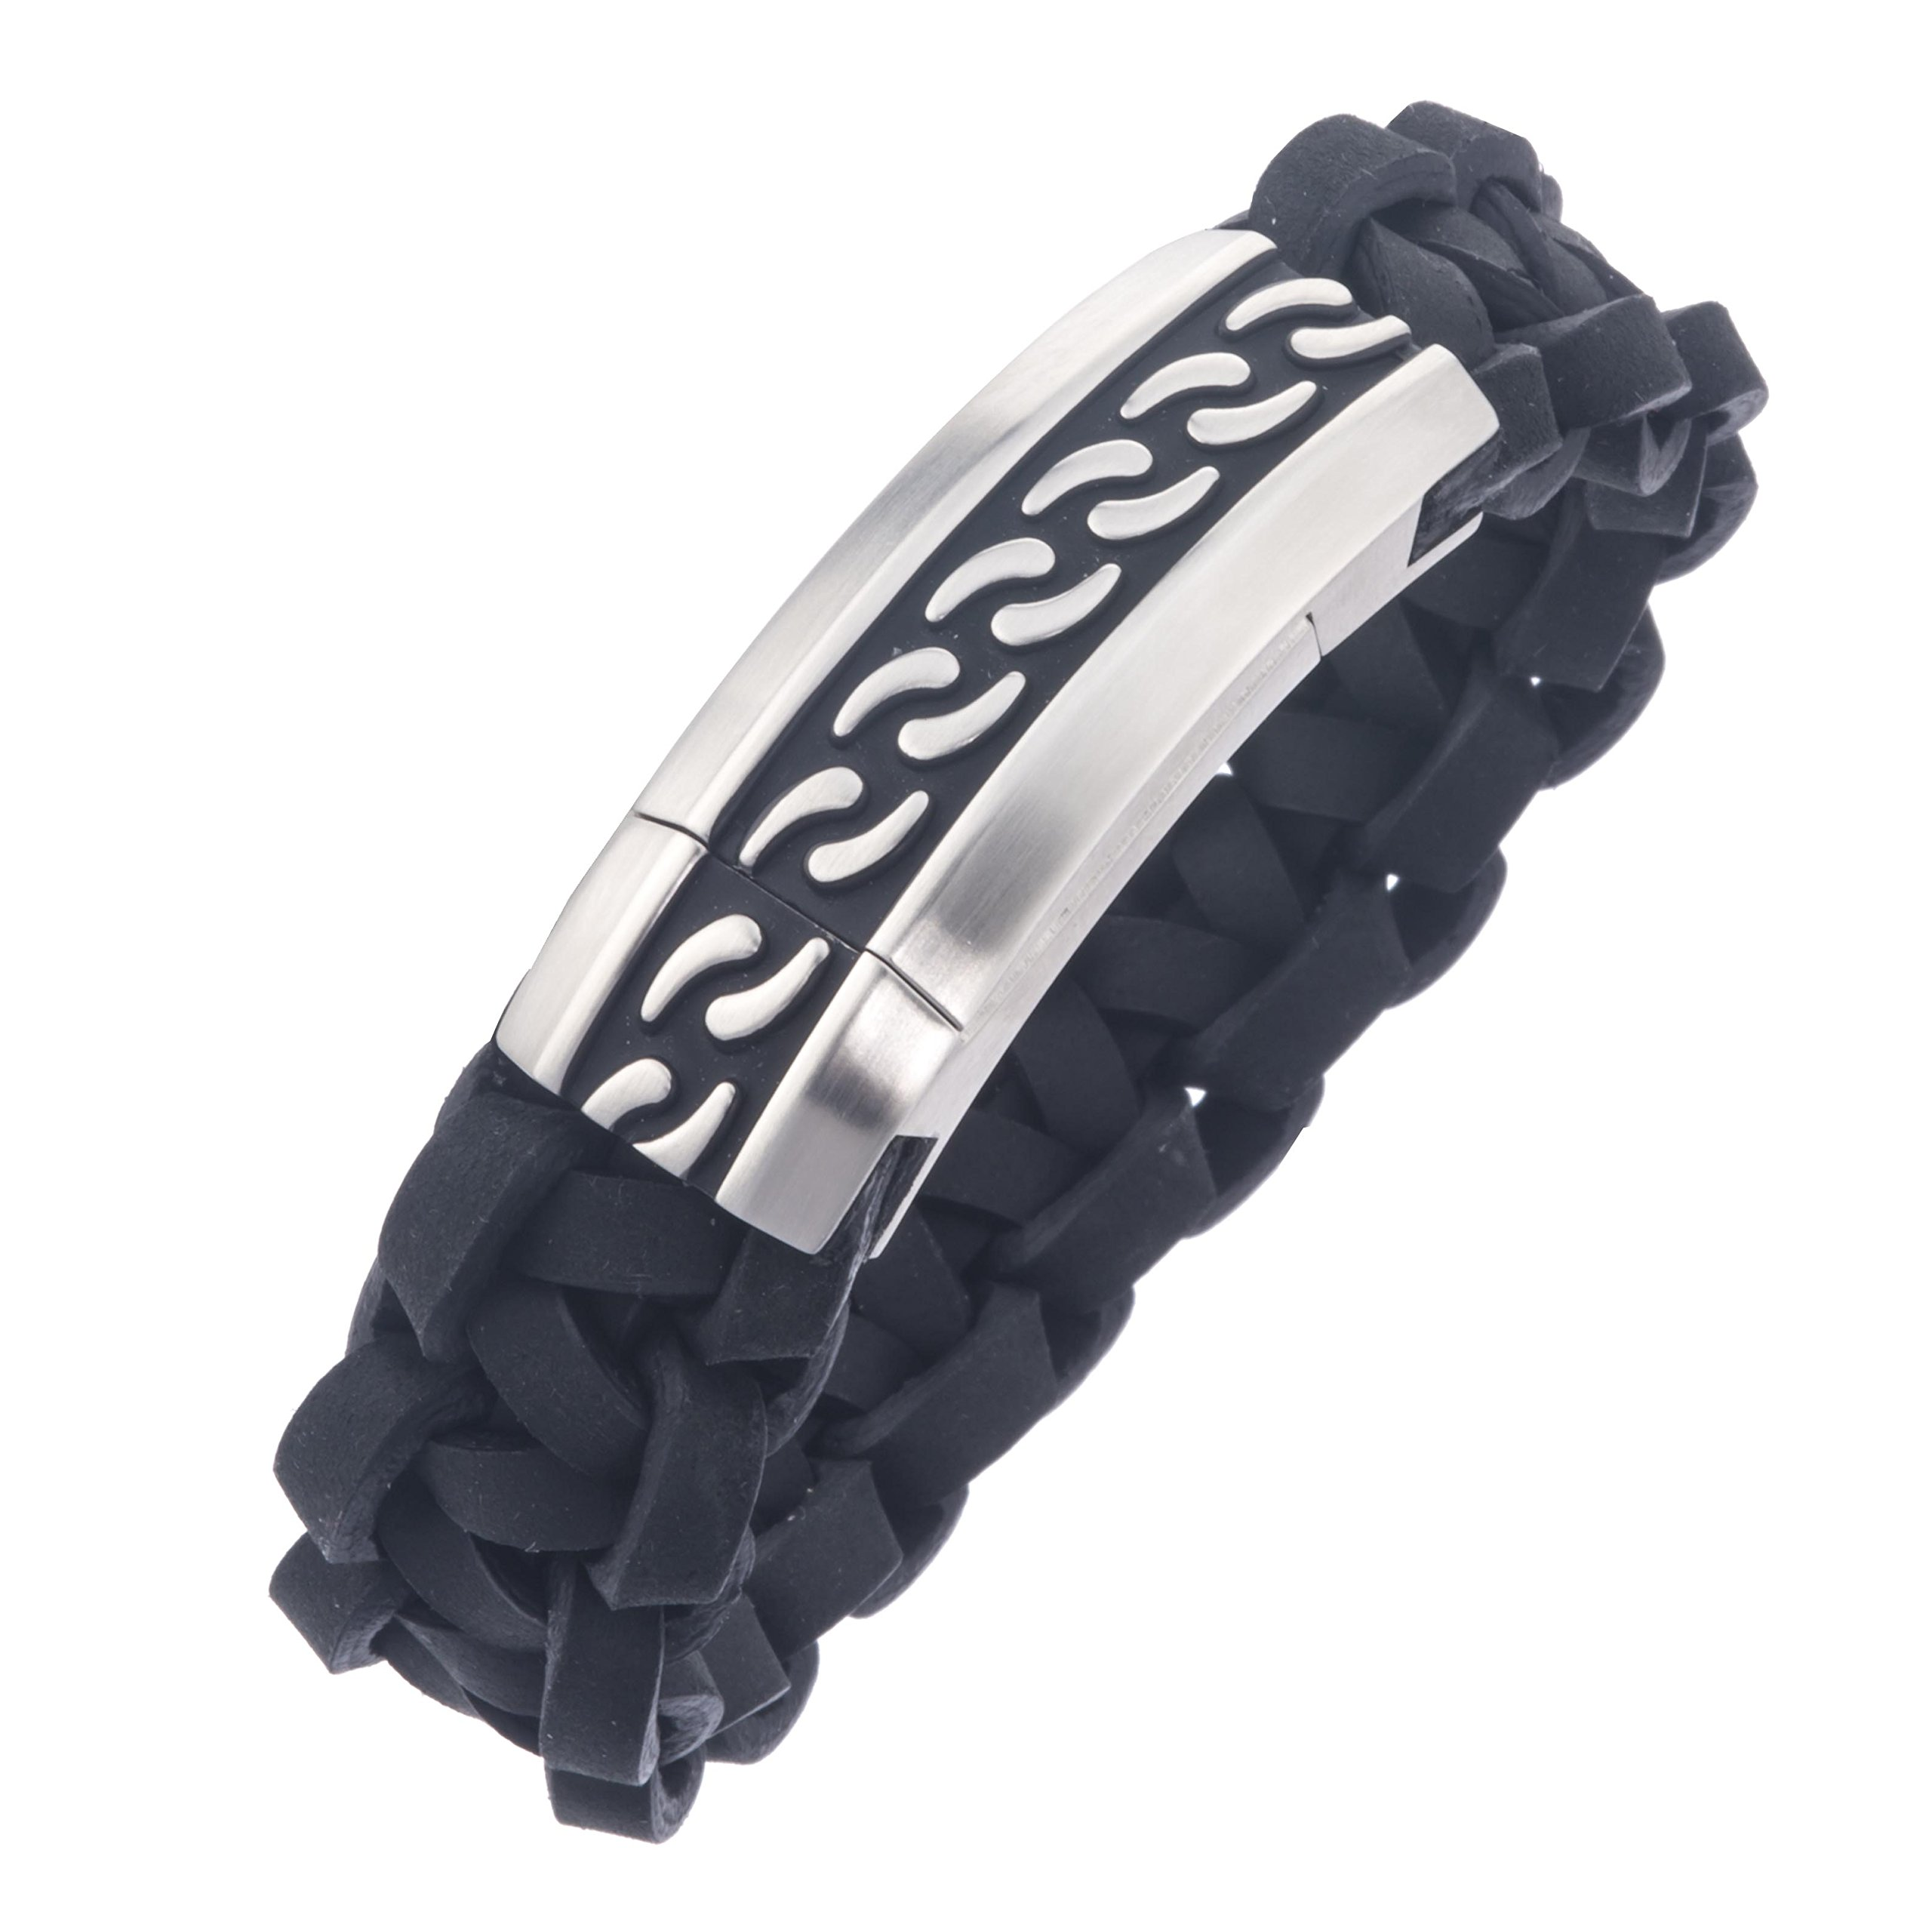 AX Jewelry Mens Stainless Steel Braided Leather Bracelet by AX Jewelry (Image #2)